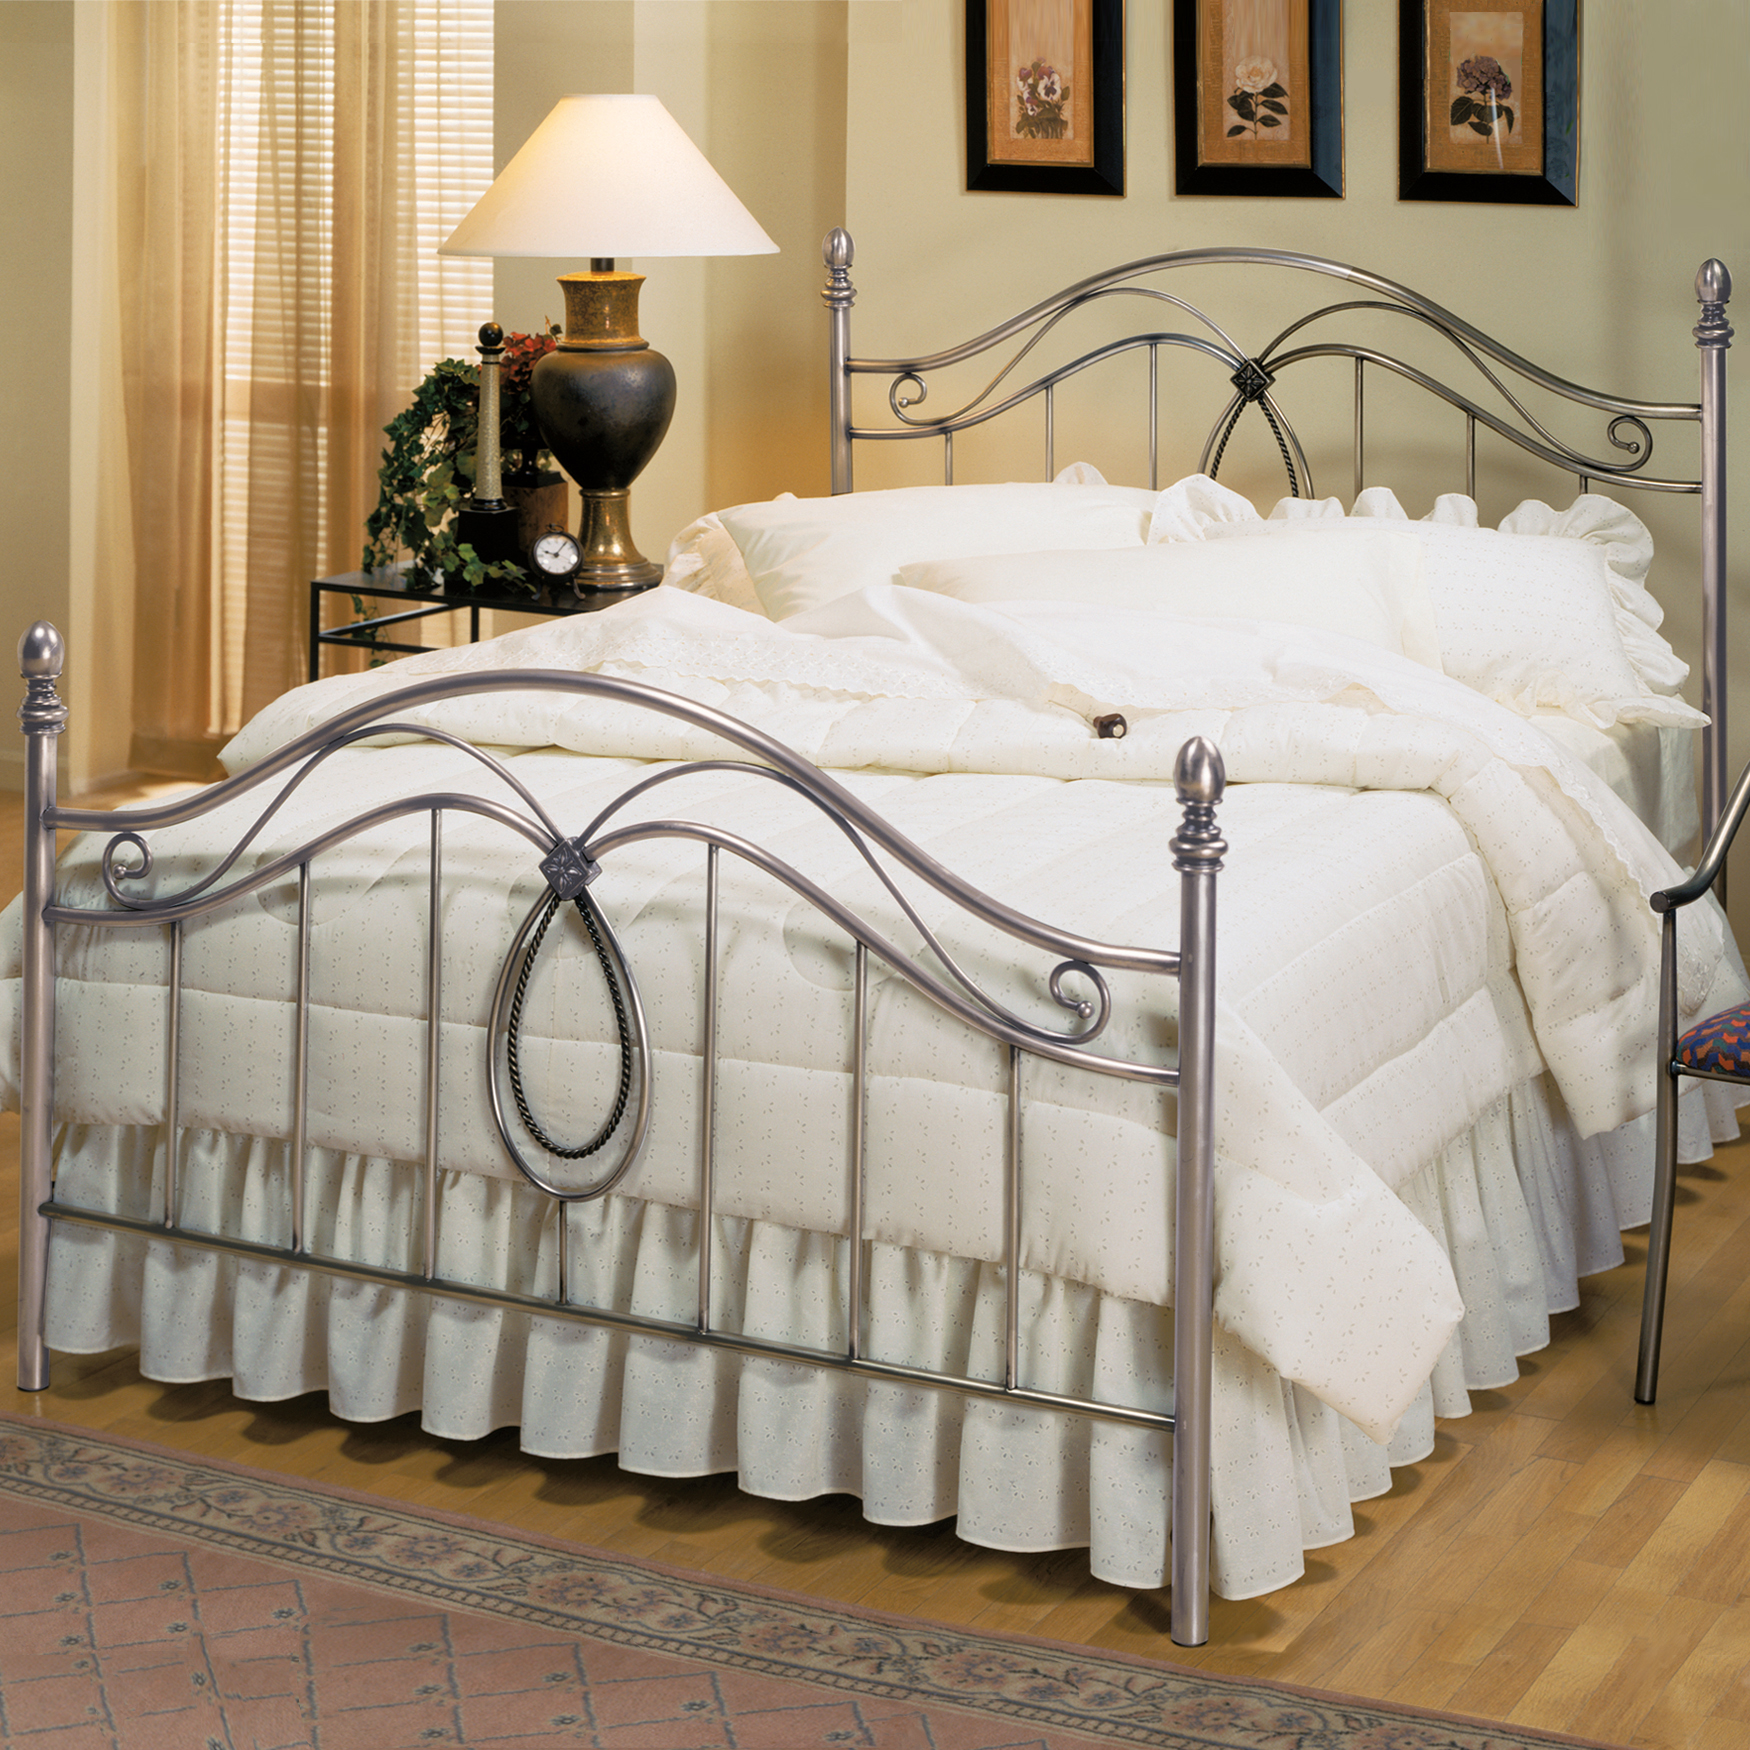 Hillsdale Milano Bed with Bed Frame,